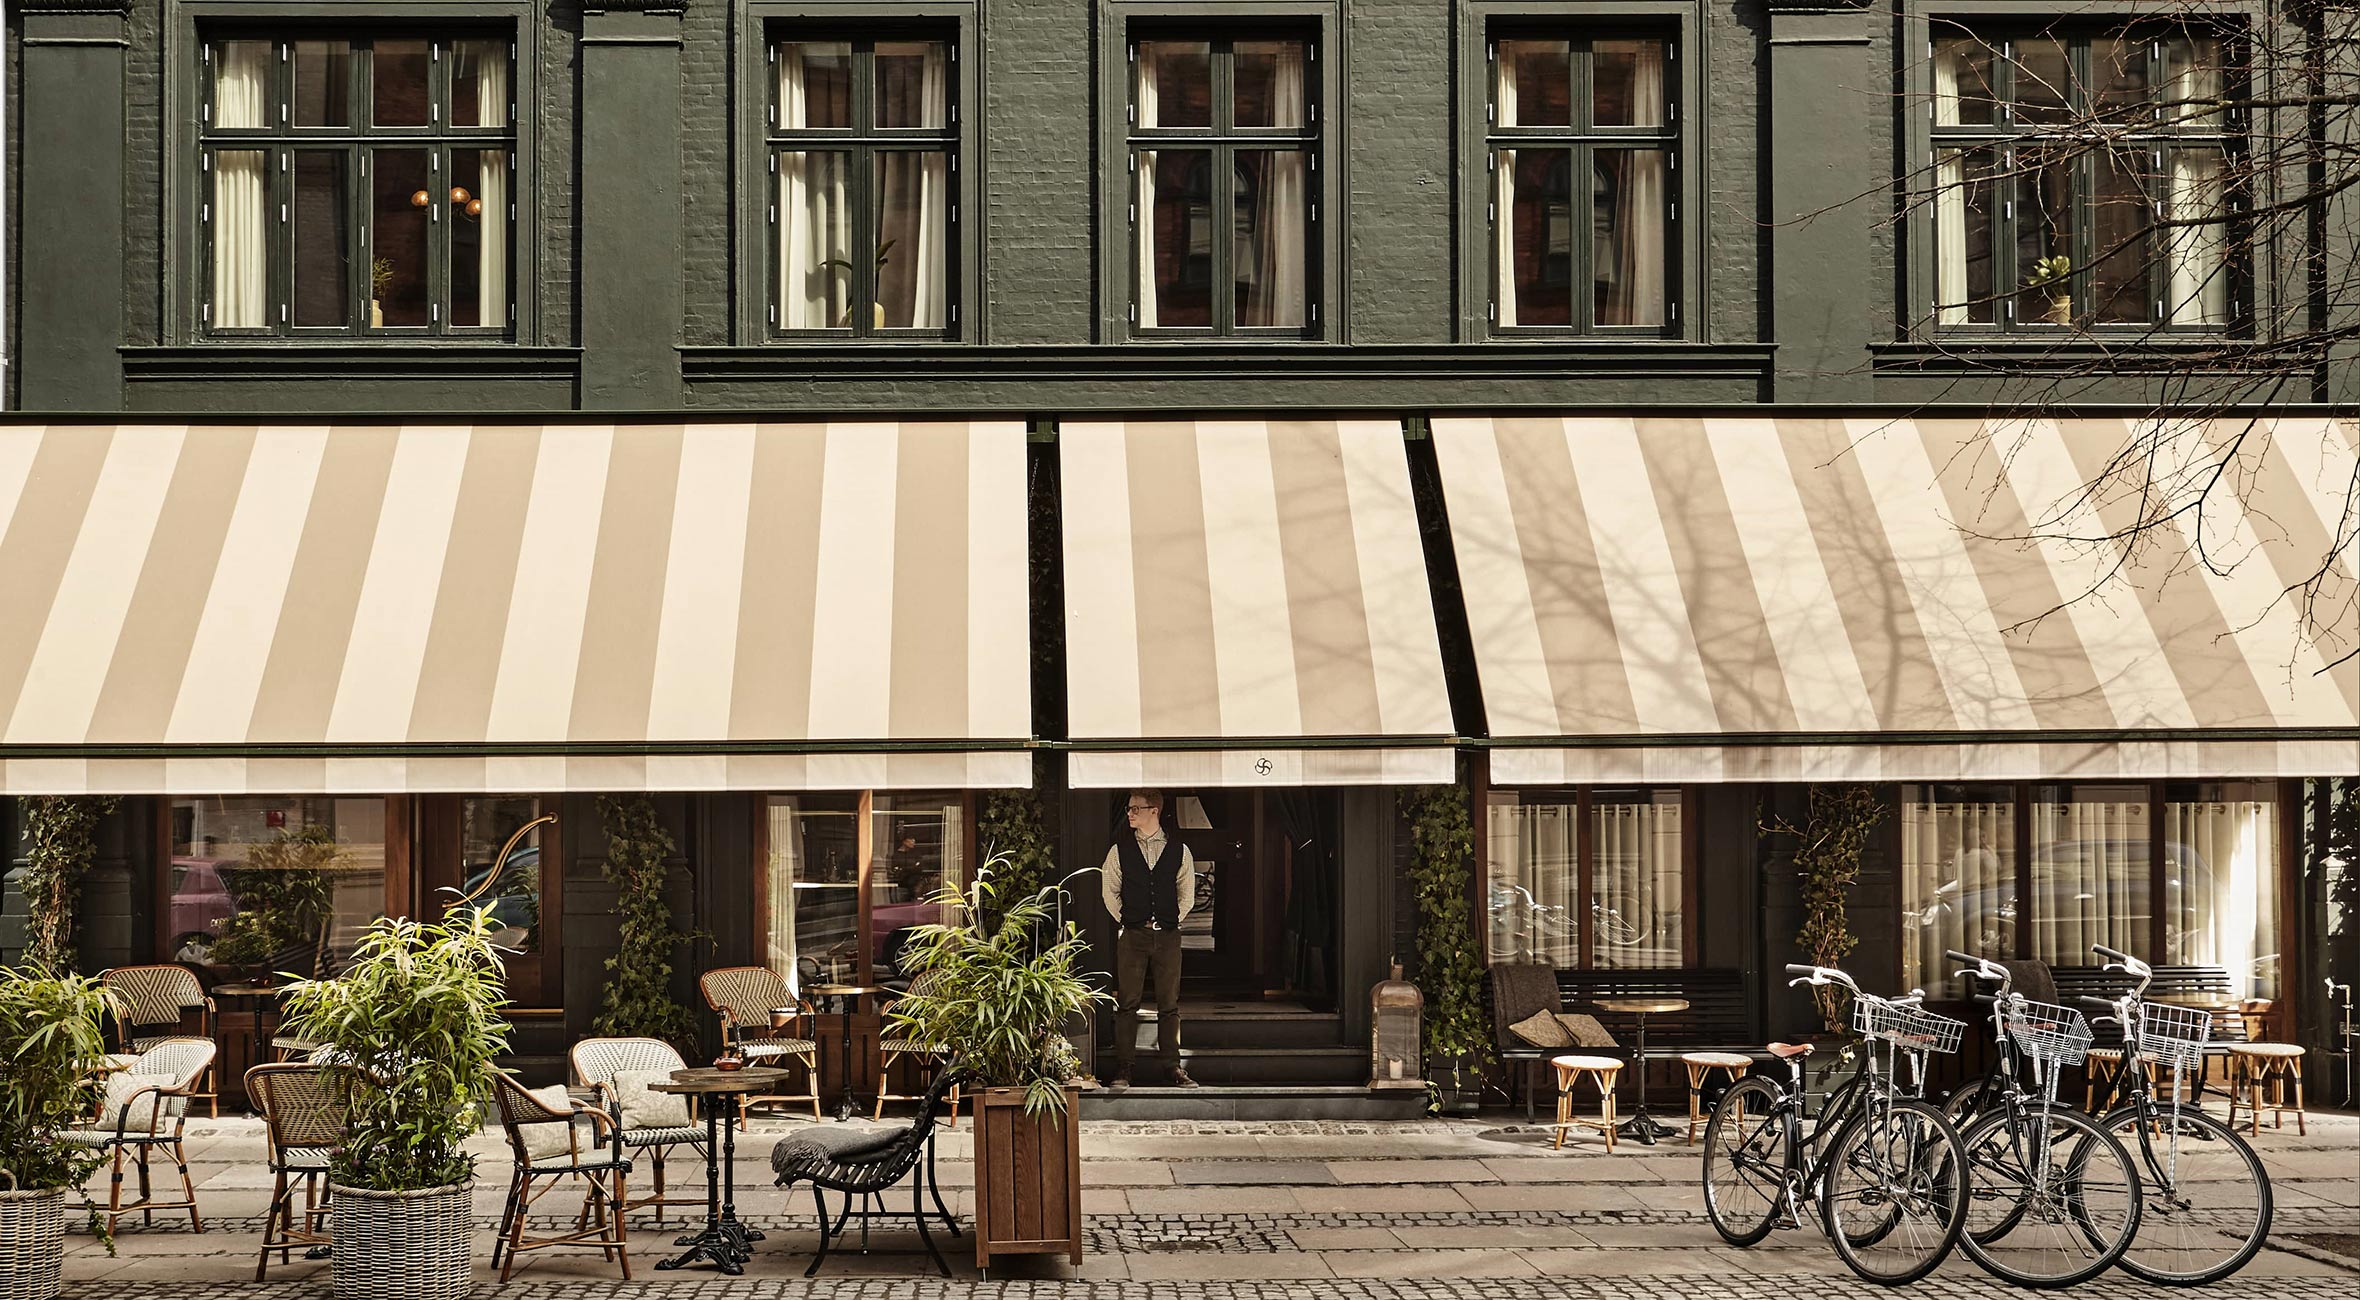 Luxury Stay for 2 People at Hotel Sanders in Copenhagen, Denmark – Named One of the Best Hotels in the World